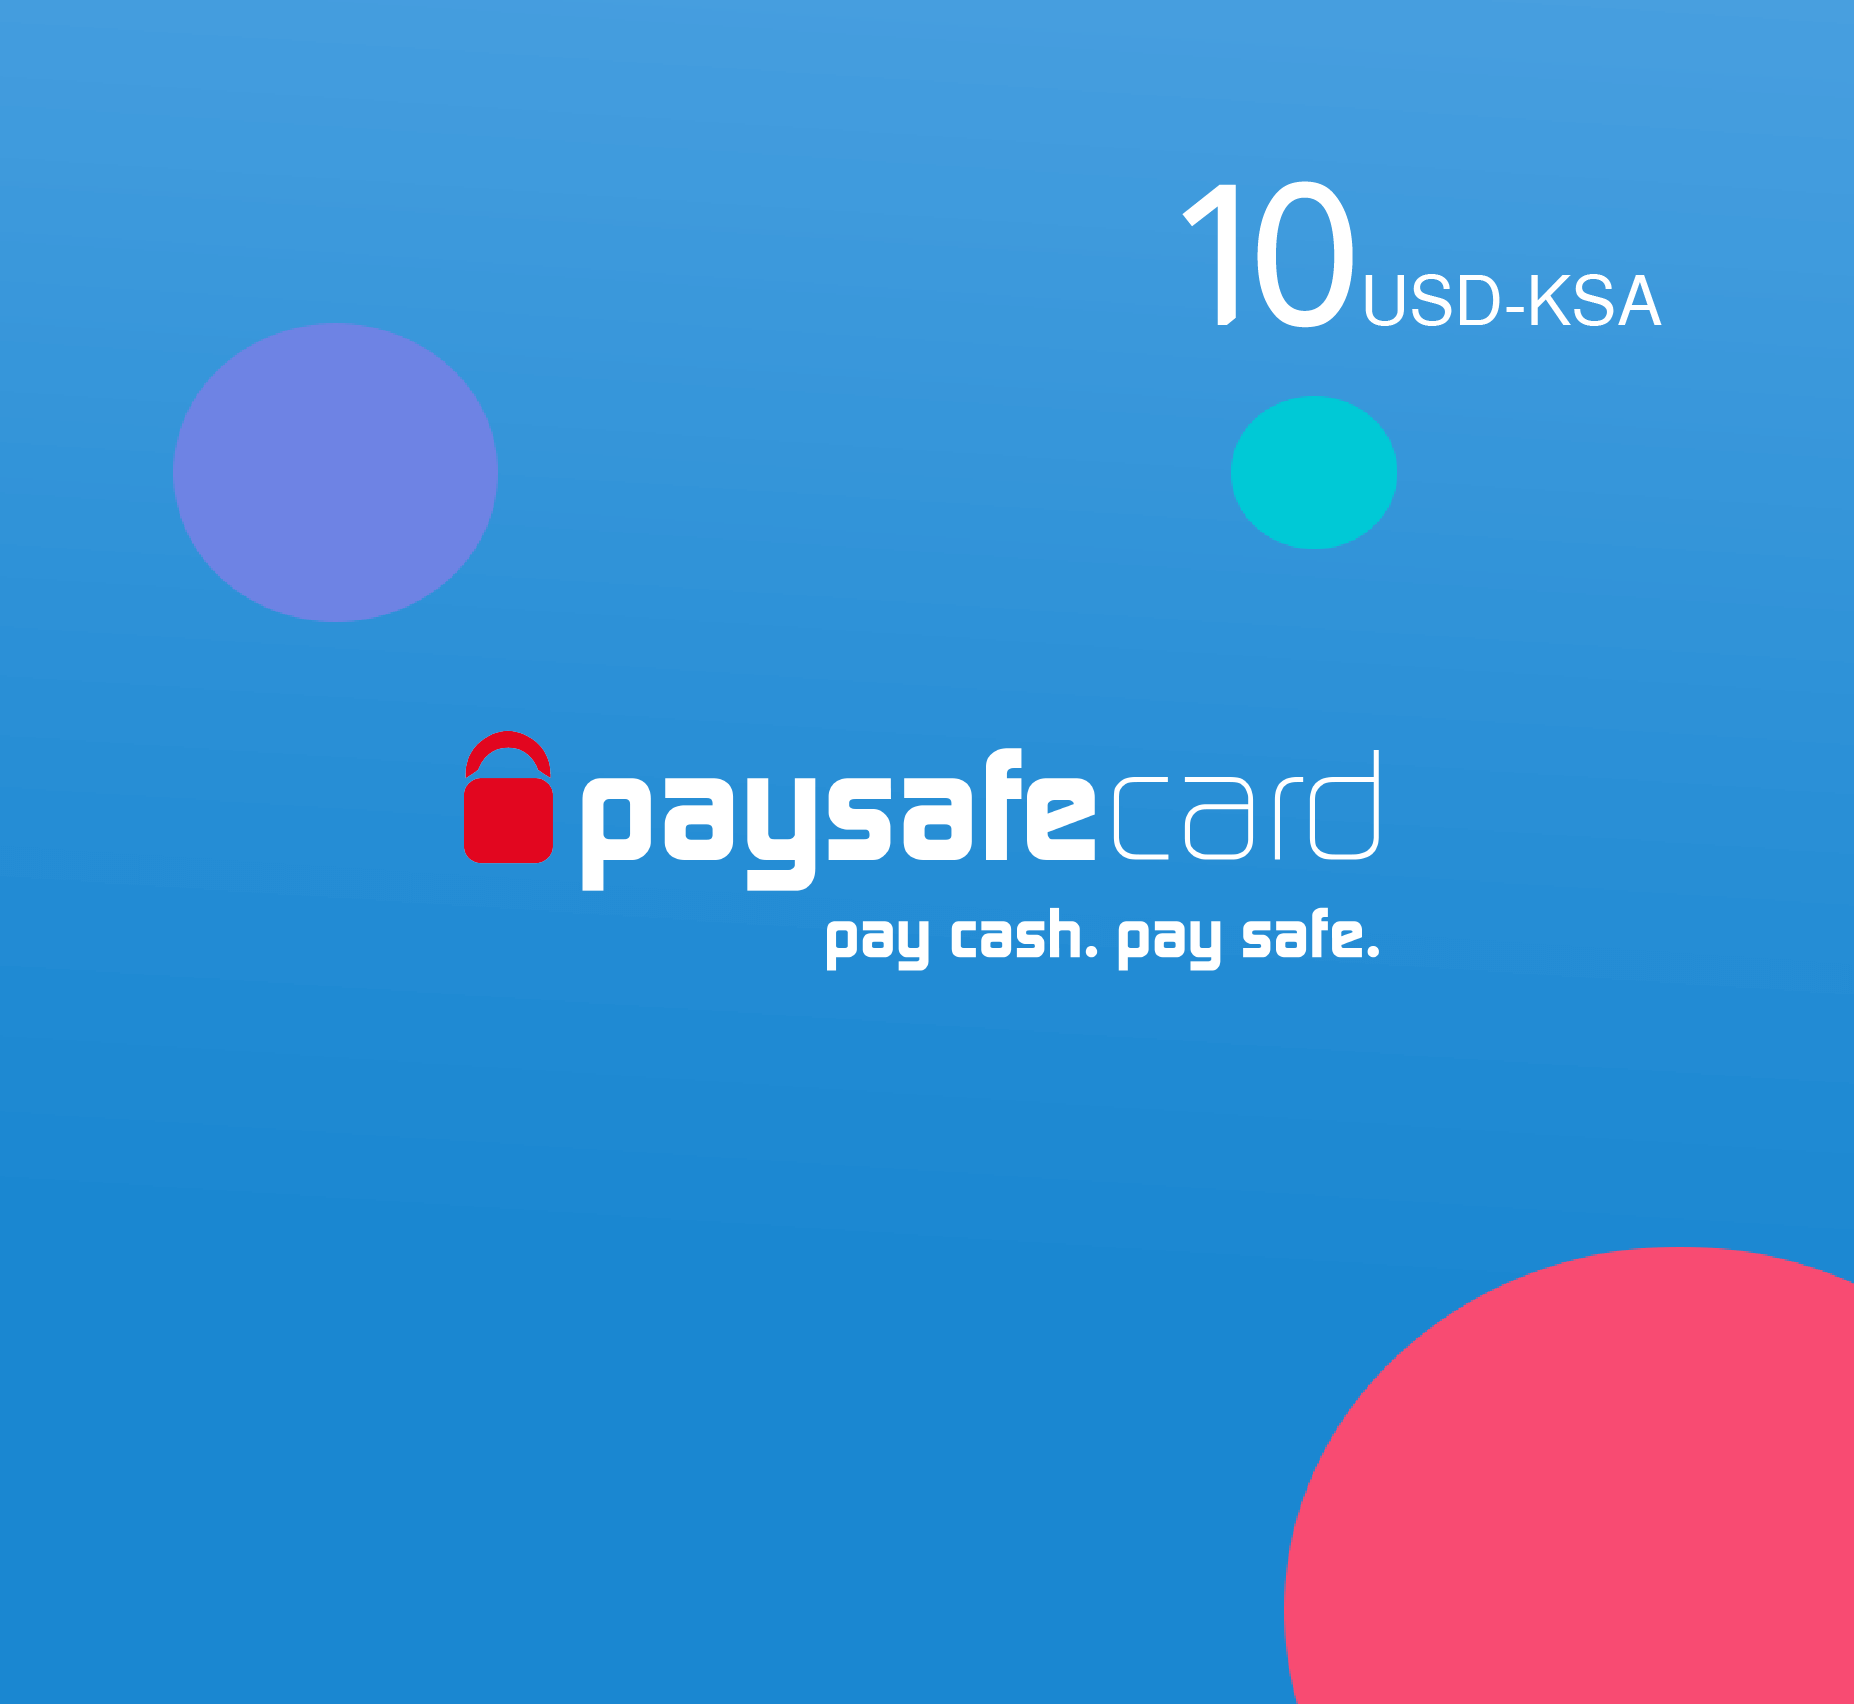 Paysafe card 10 USD - KSA